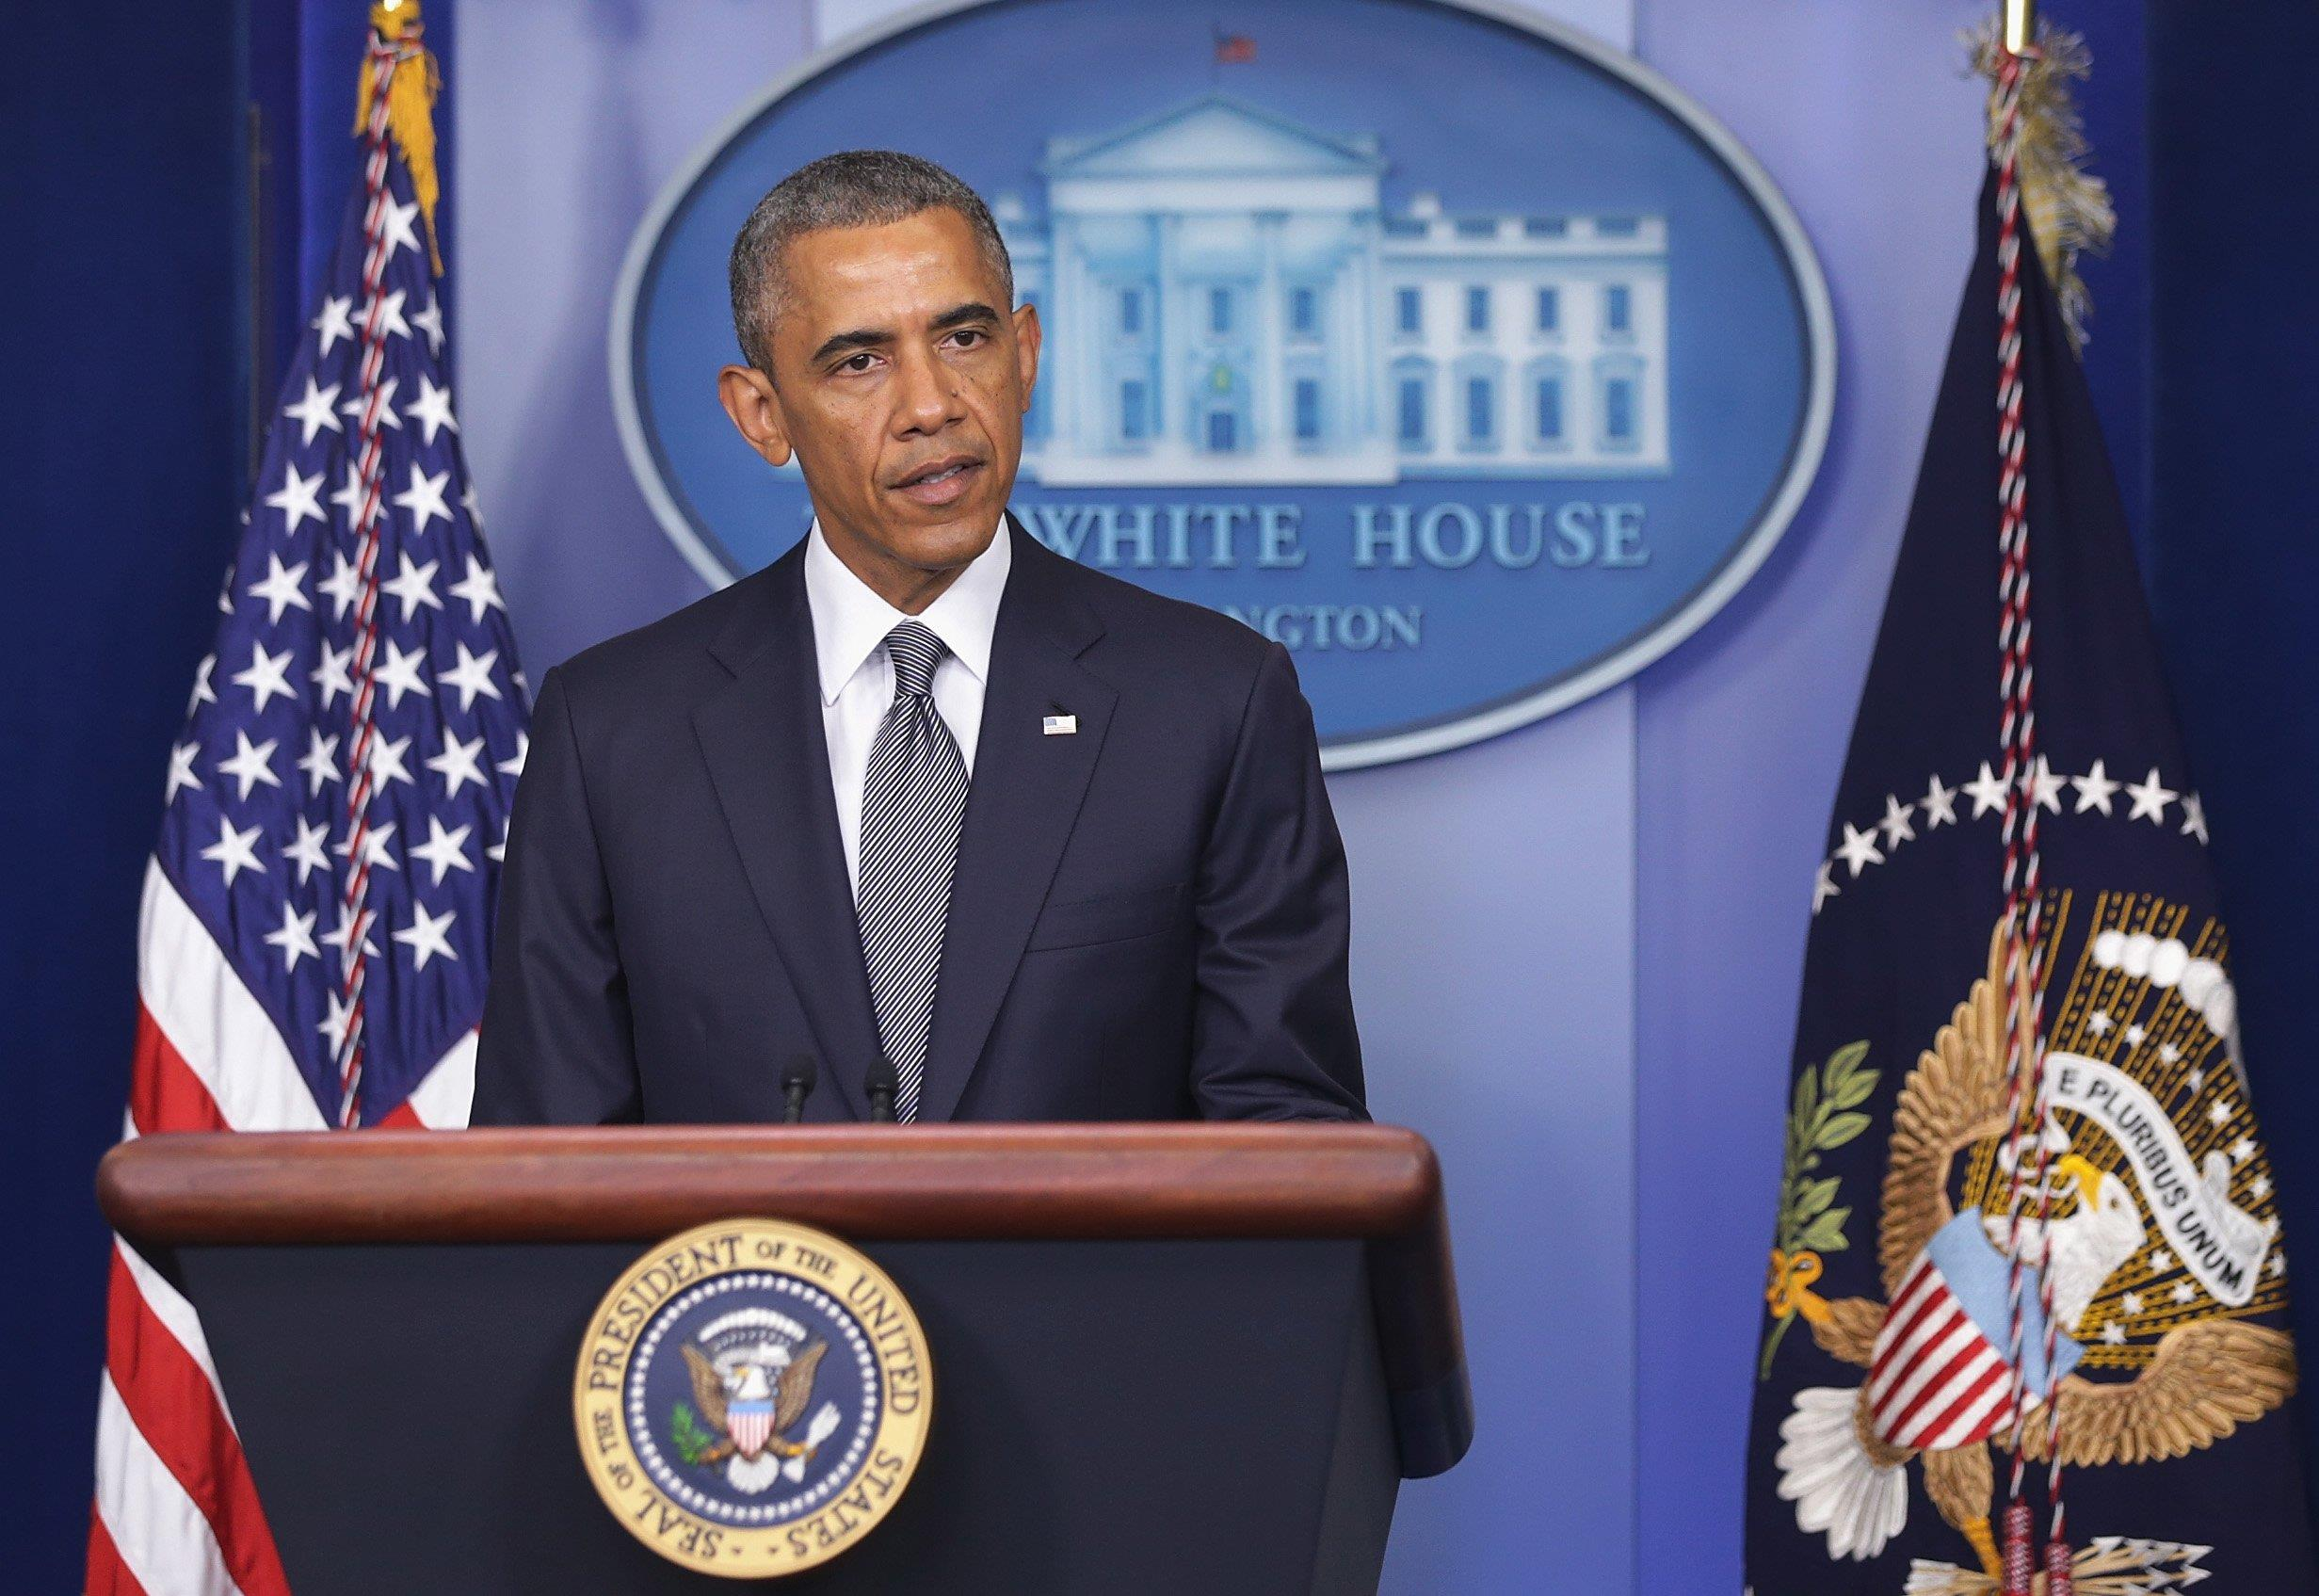 Image: President Obama Delivers Statement On Situation In Ukraine